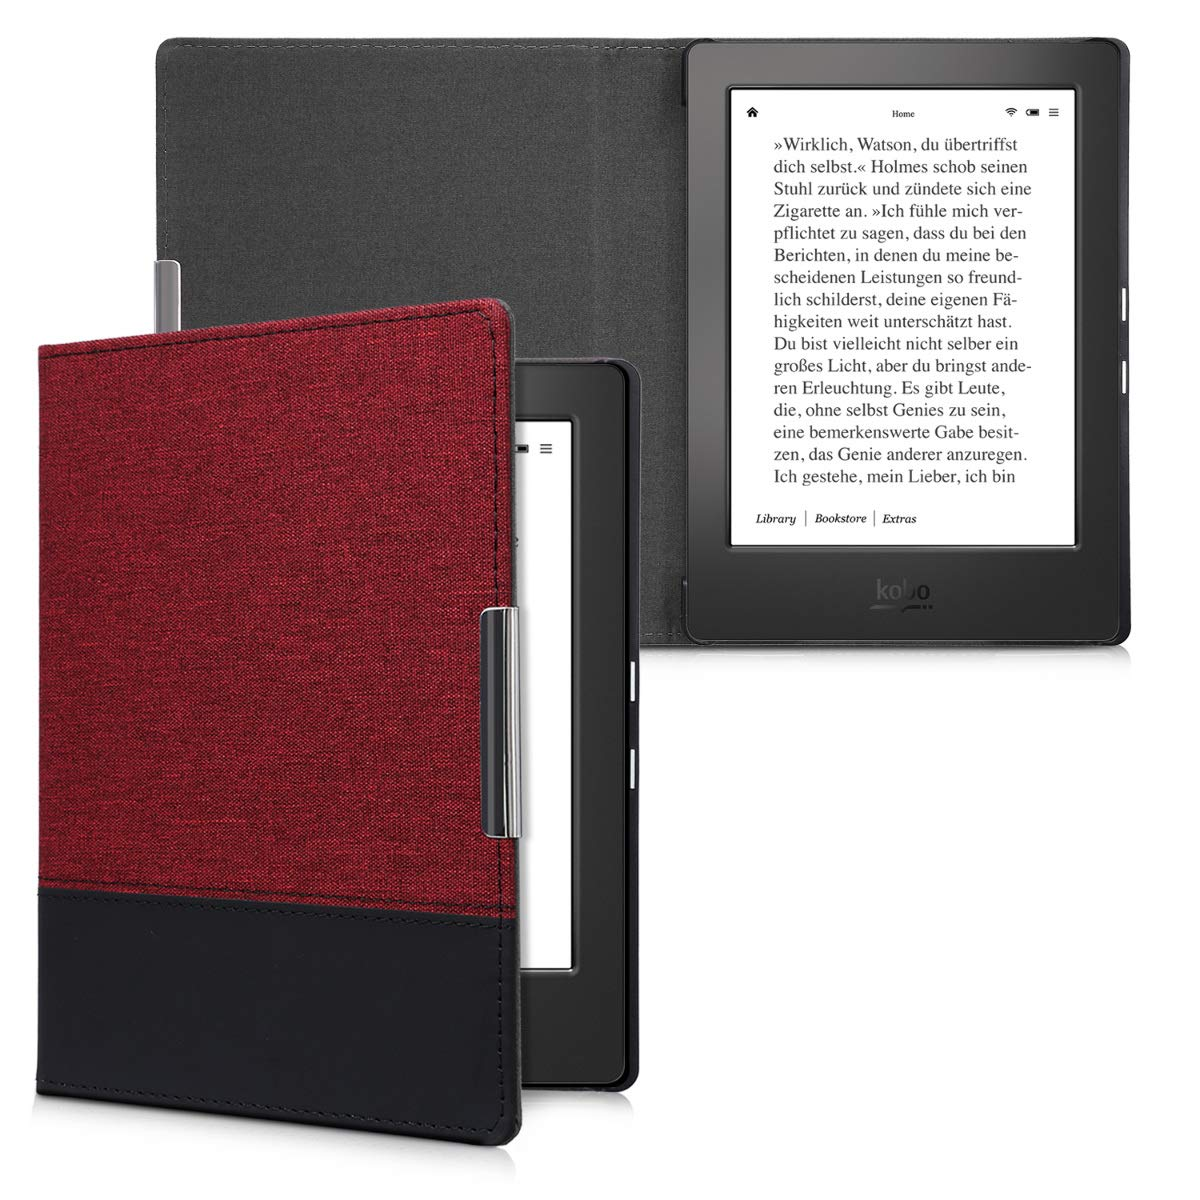 kwmobile Case for Kobo Aura H2O Edition 1 - PU Leather and Canvas Protective e-Reader Cover Folio Case - dark red black